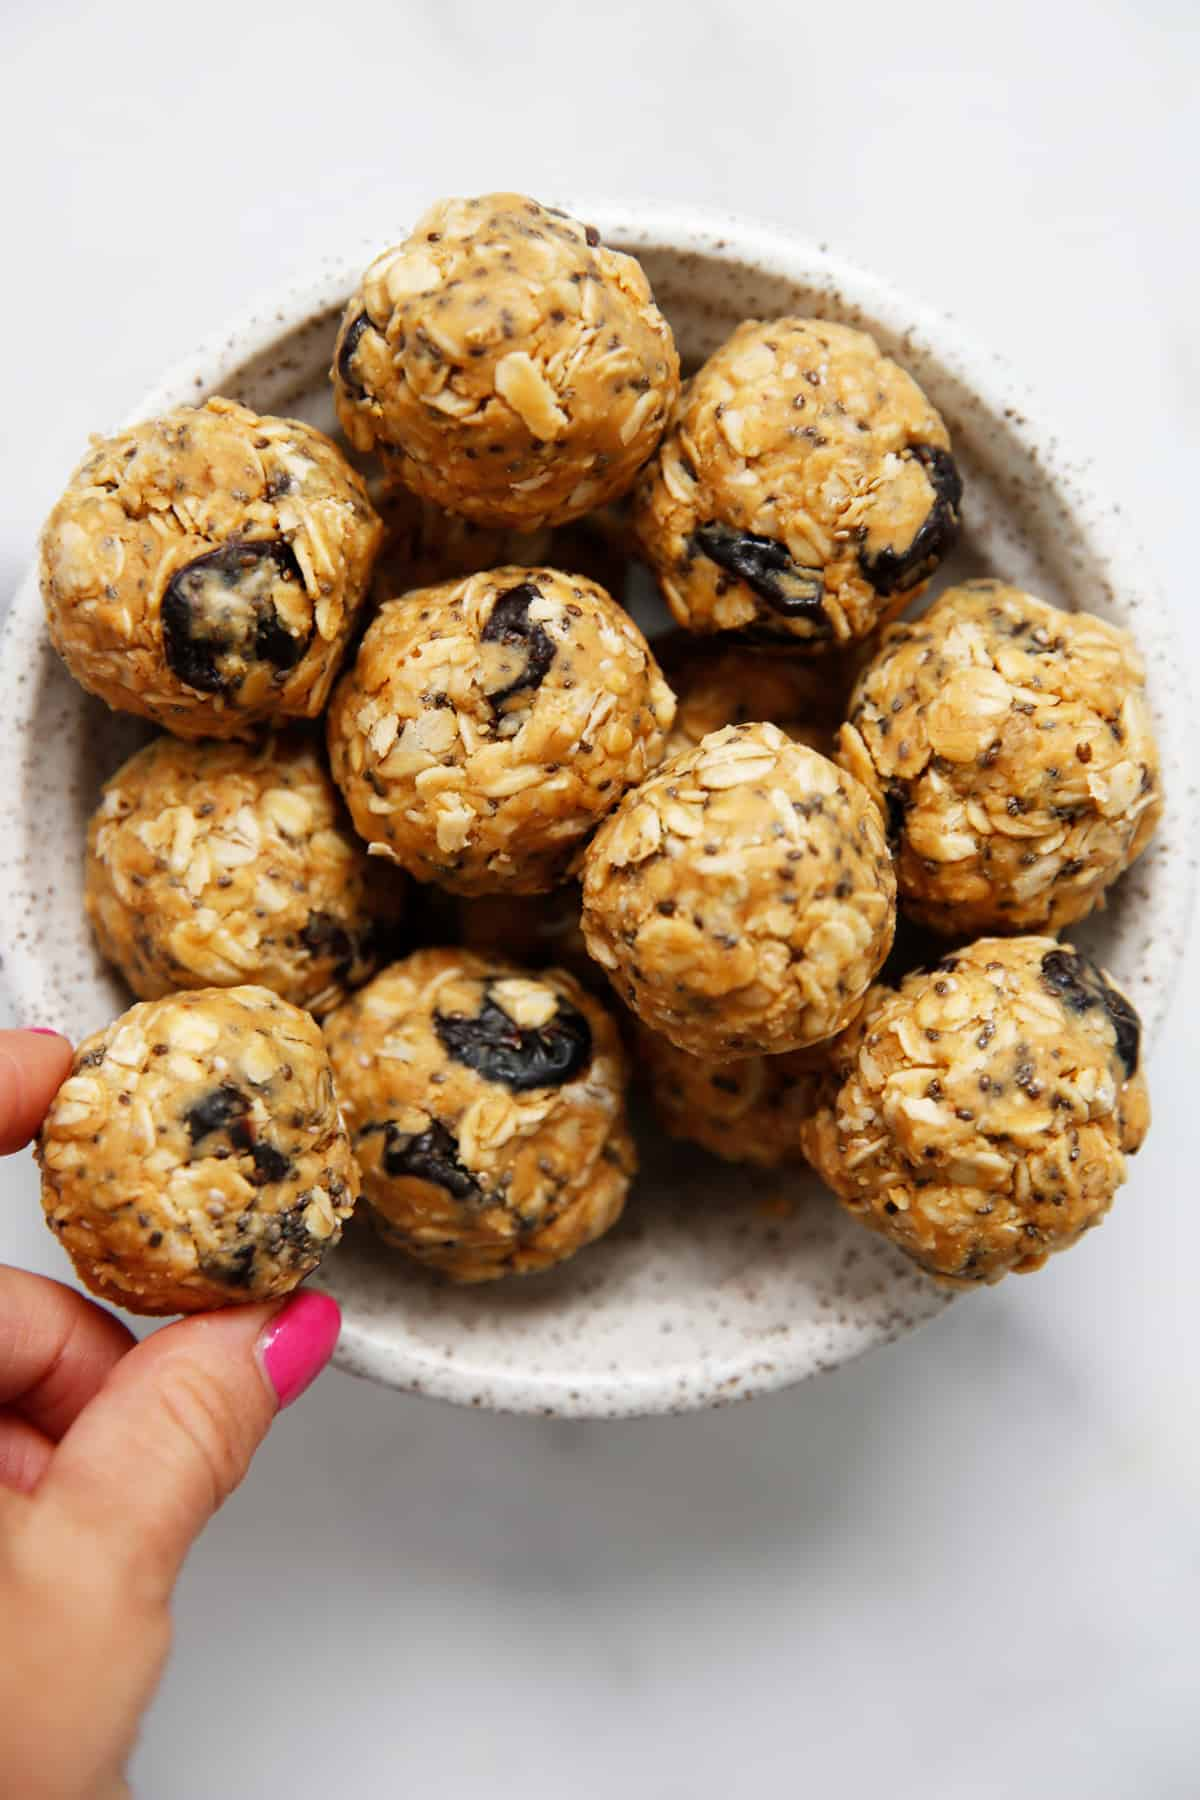 oats and peanut butter balls